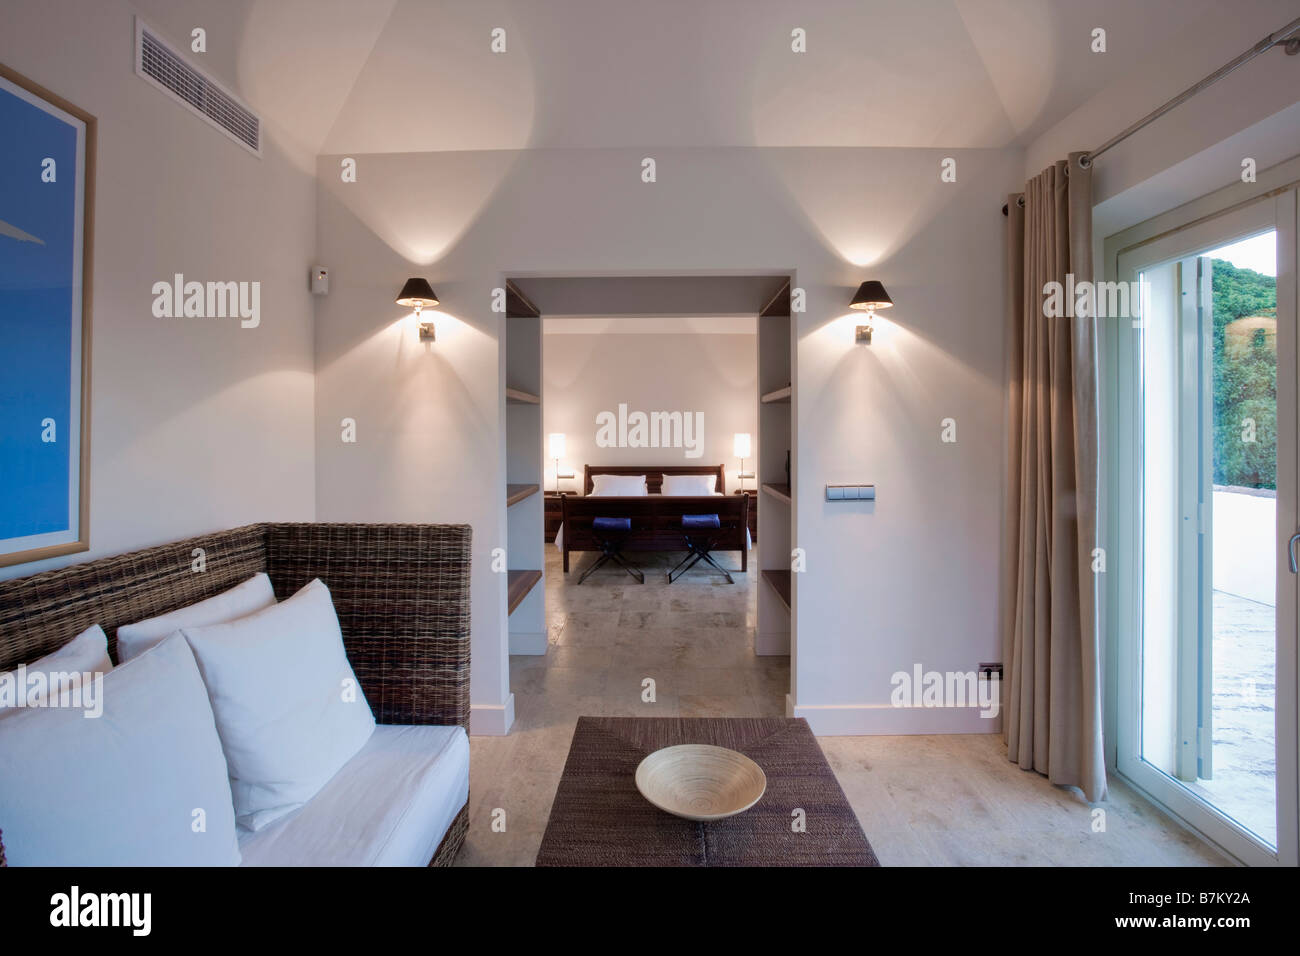 Lighted Wall Lights On Either Side Of Doorway Living Room In Modern Spanish Hotel Suite